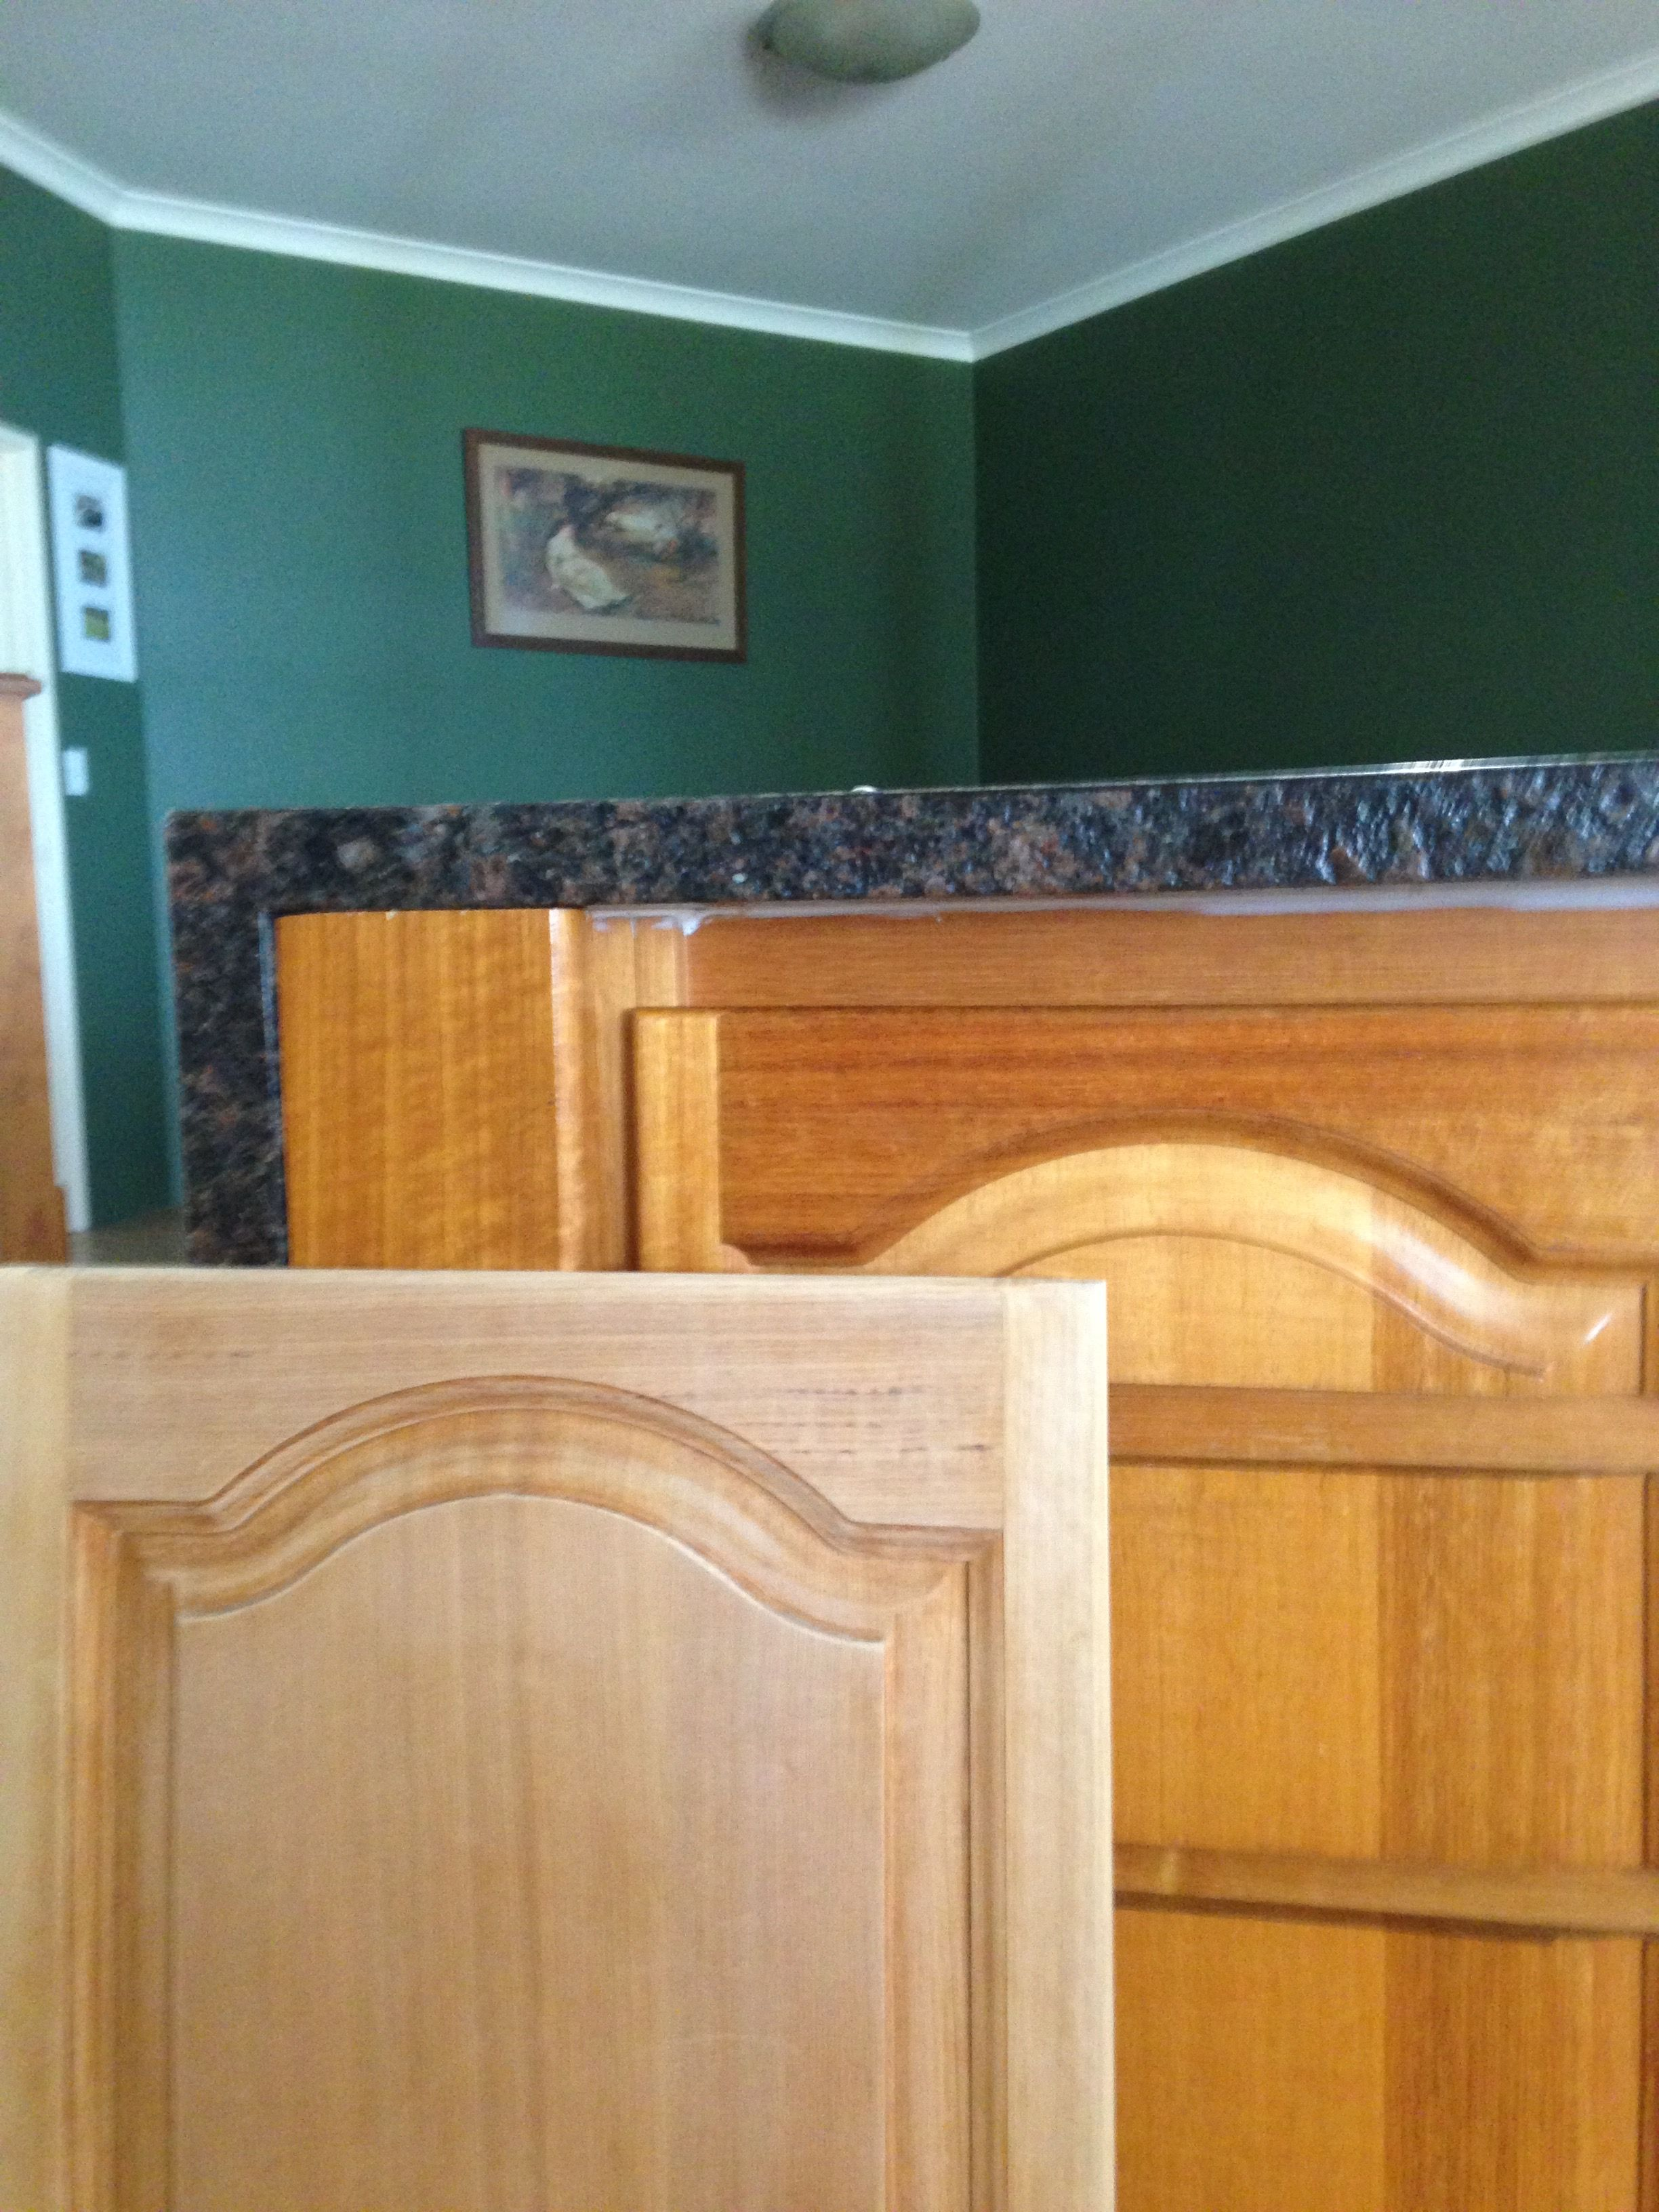 Surprising How To Clean Wood After Sanding Before Staining Woodworking Download Free Architecture Designs Ogrambritishbridgeorg